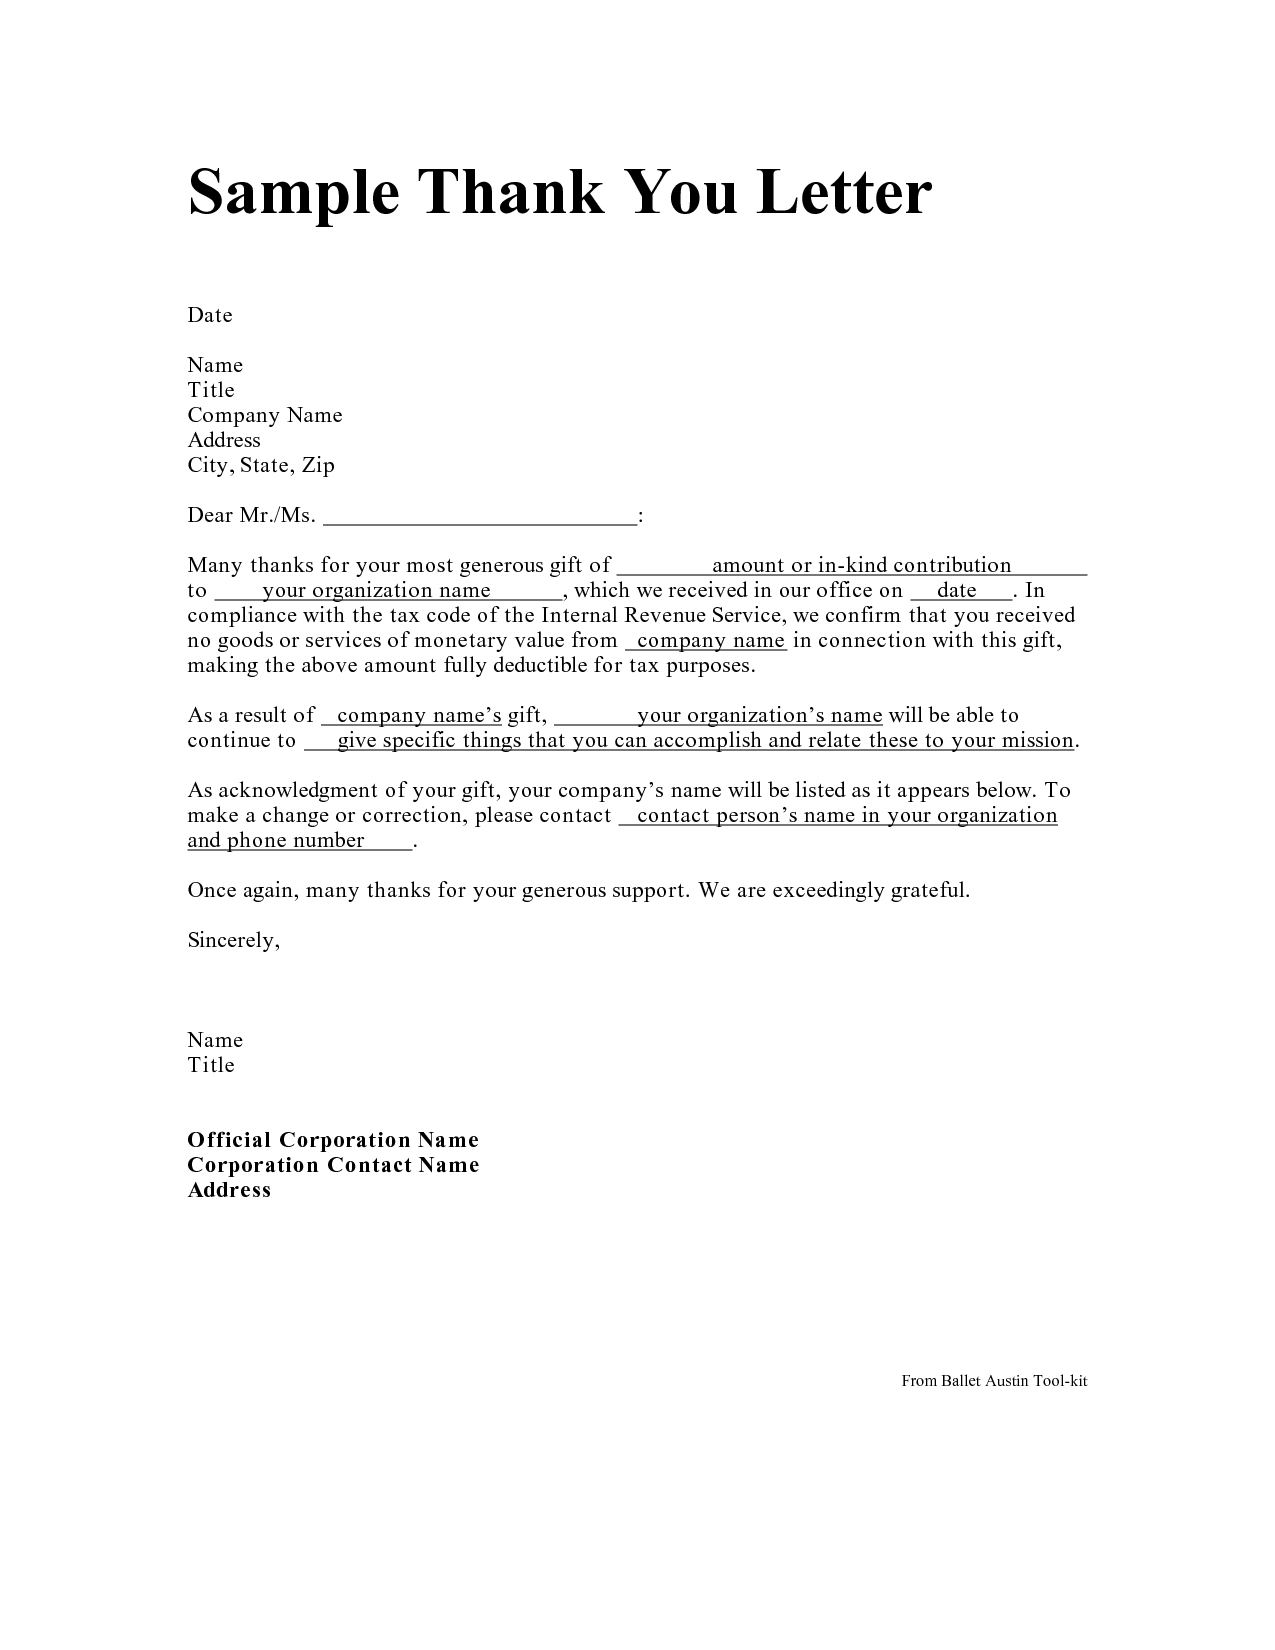 thank you for your donation letter template Collection-Personal Thank You Letter Personal Thank You Letter Samples Writing Thank You Notes 2-h